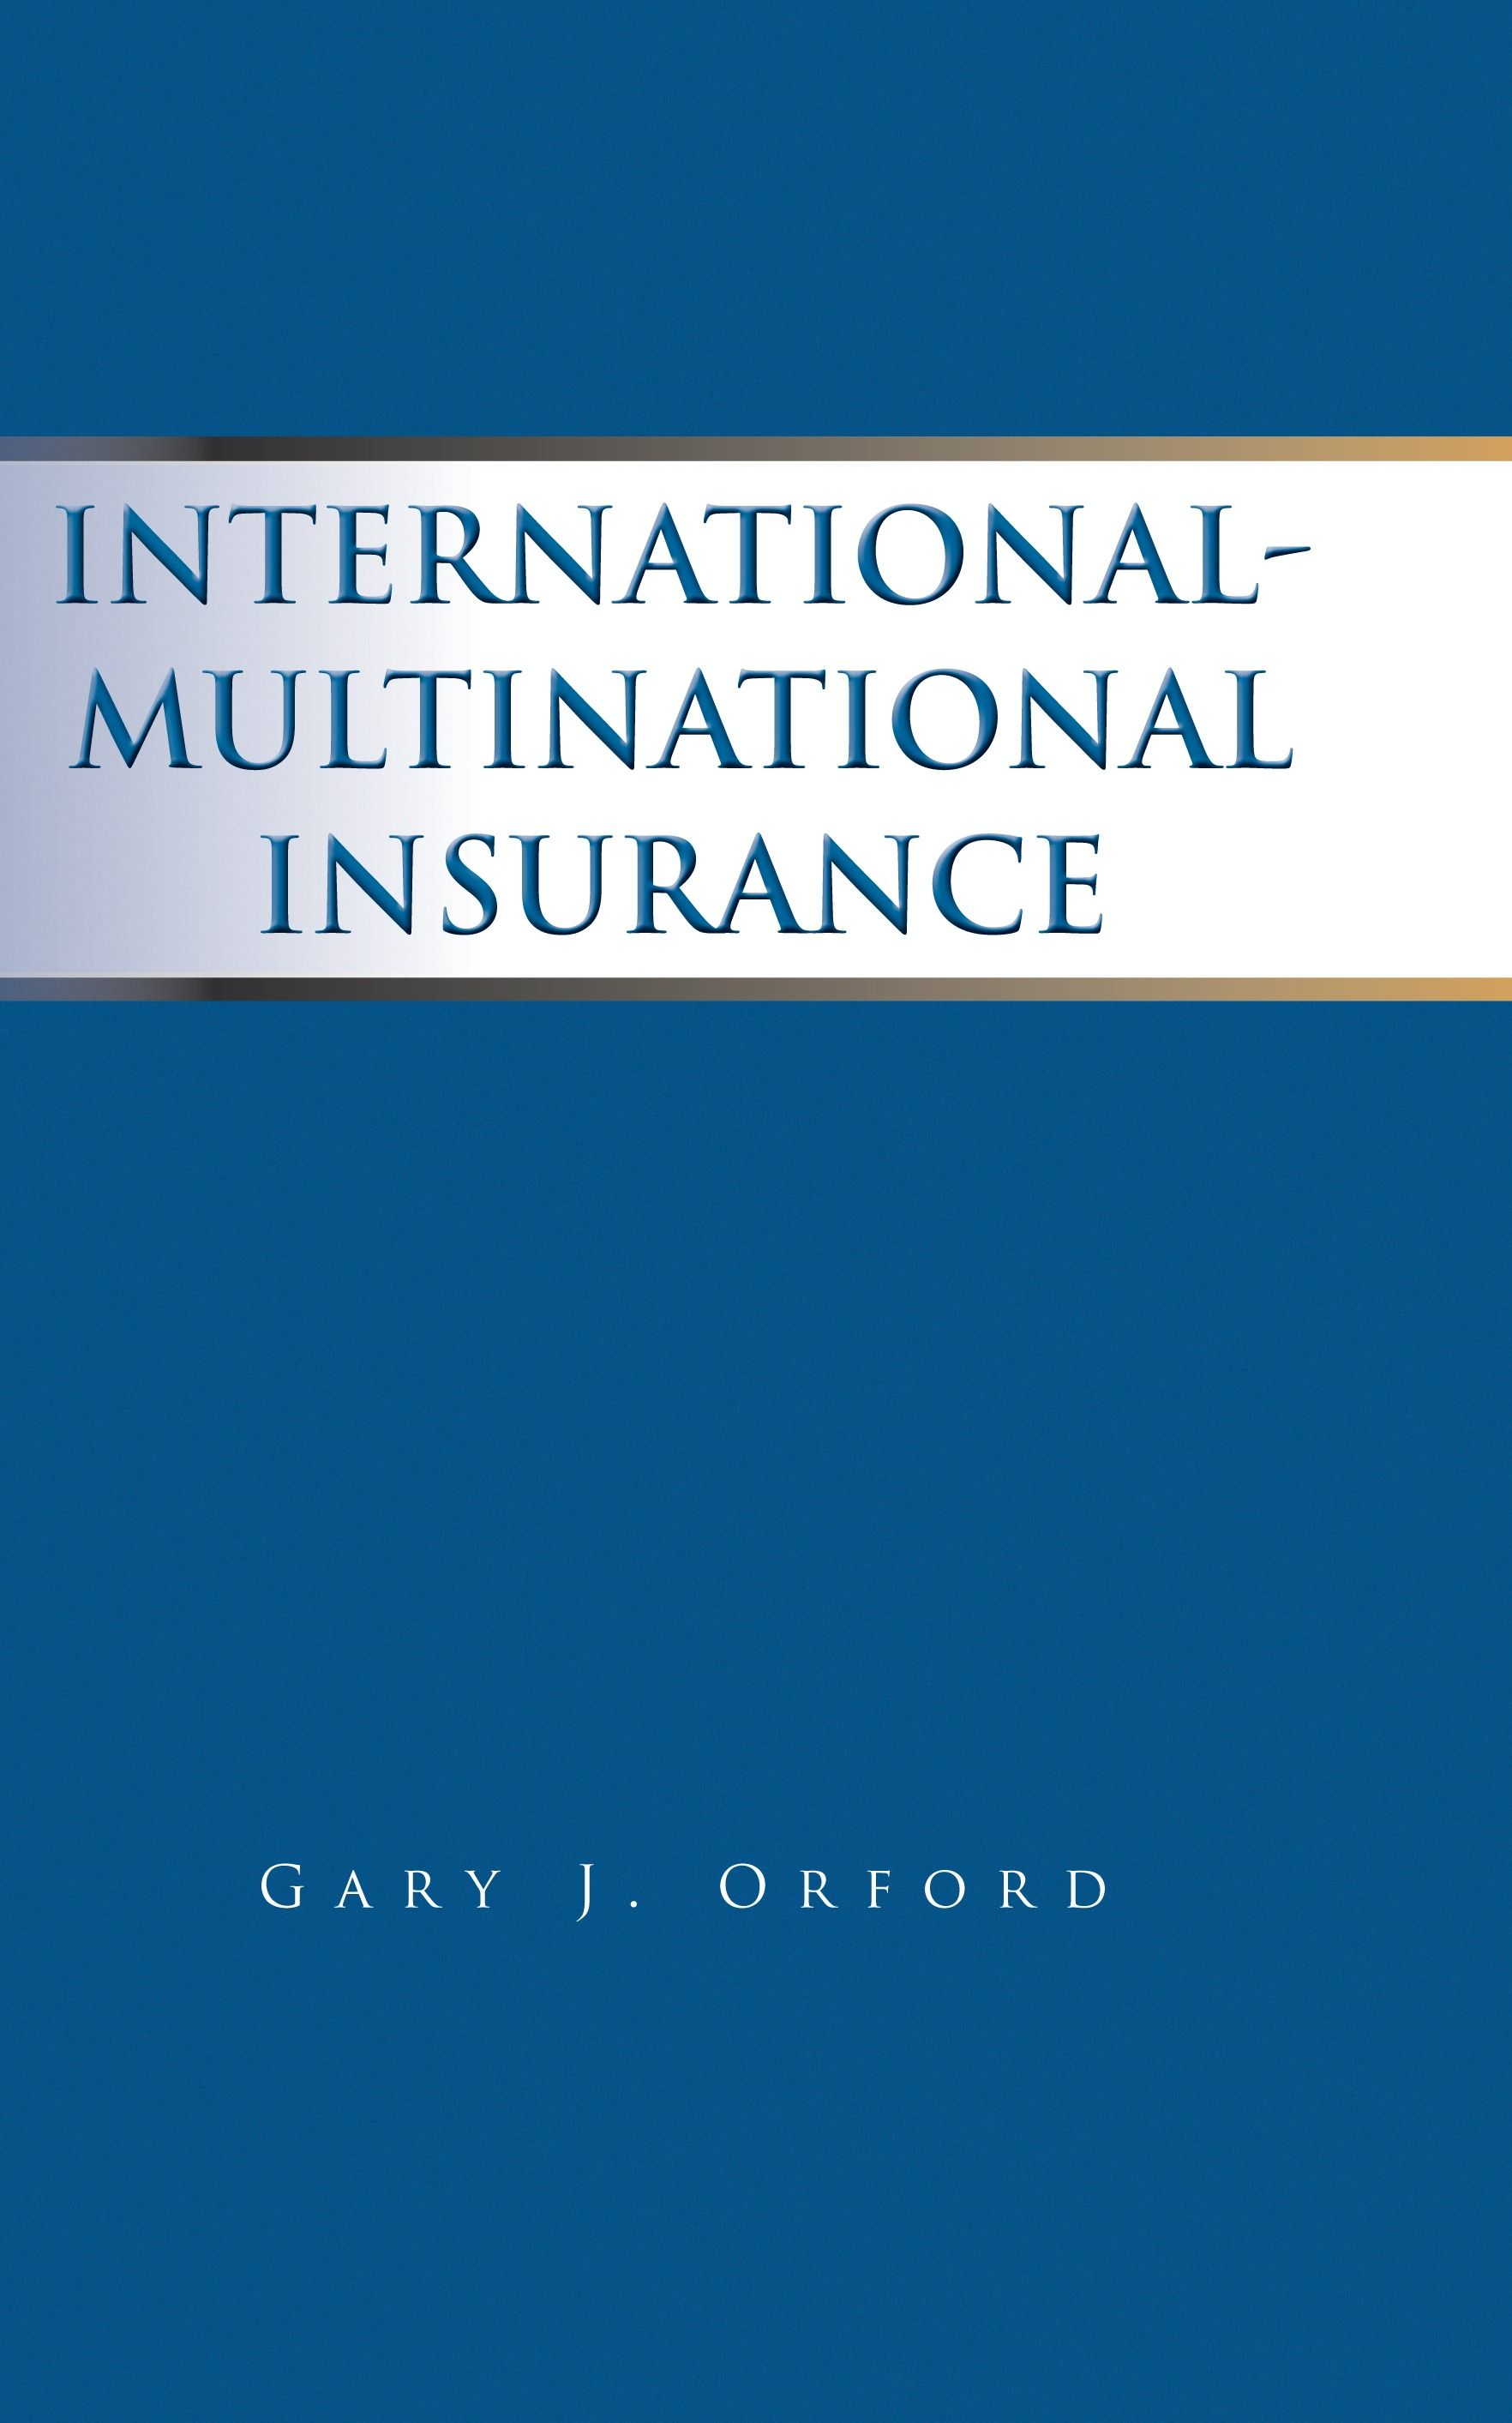 International/Multinational Insurance